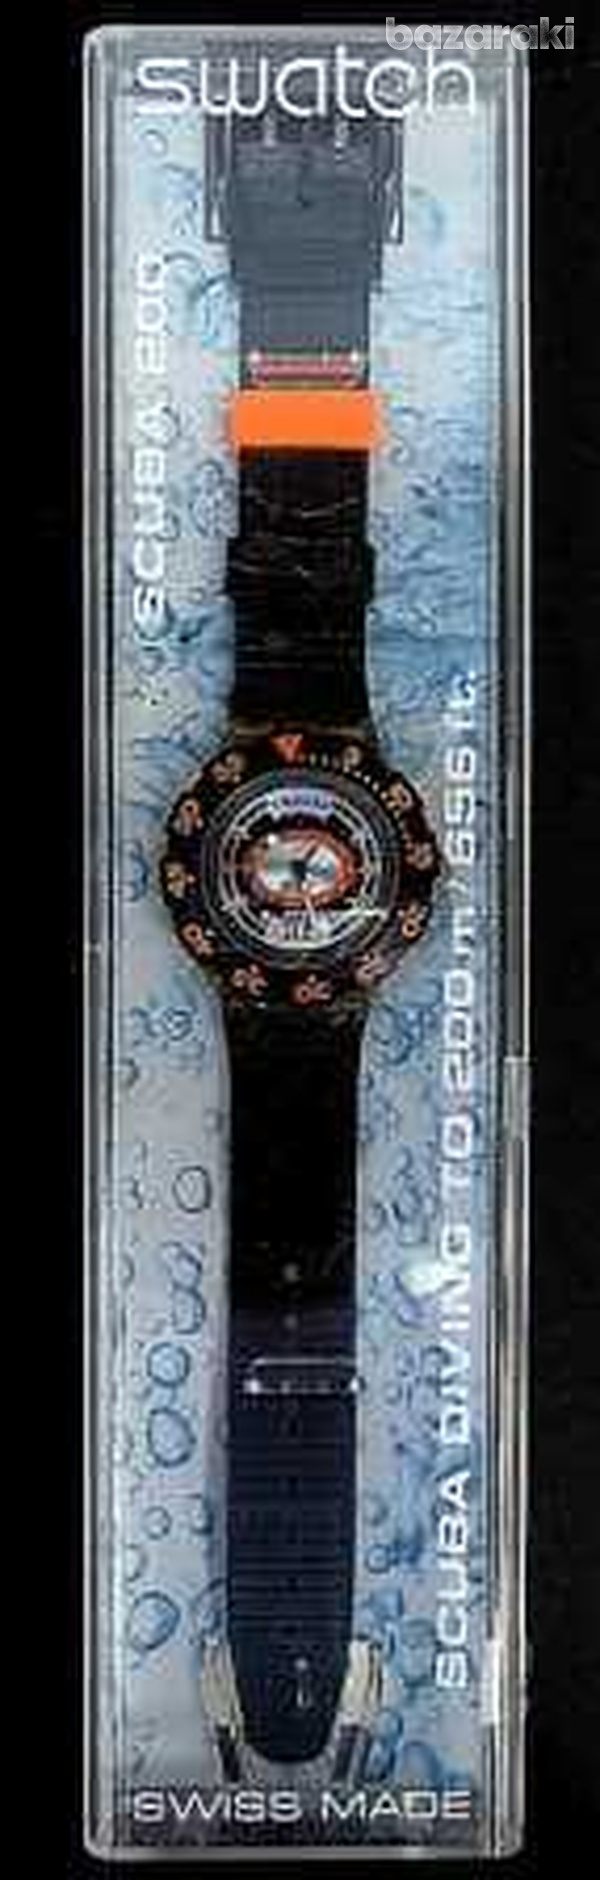 Swatch scuba 200 tech diving new watch-4